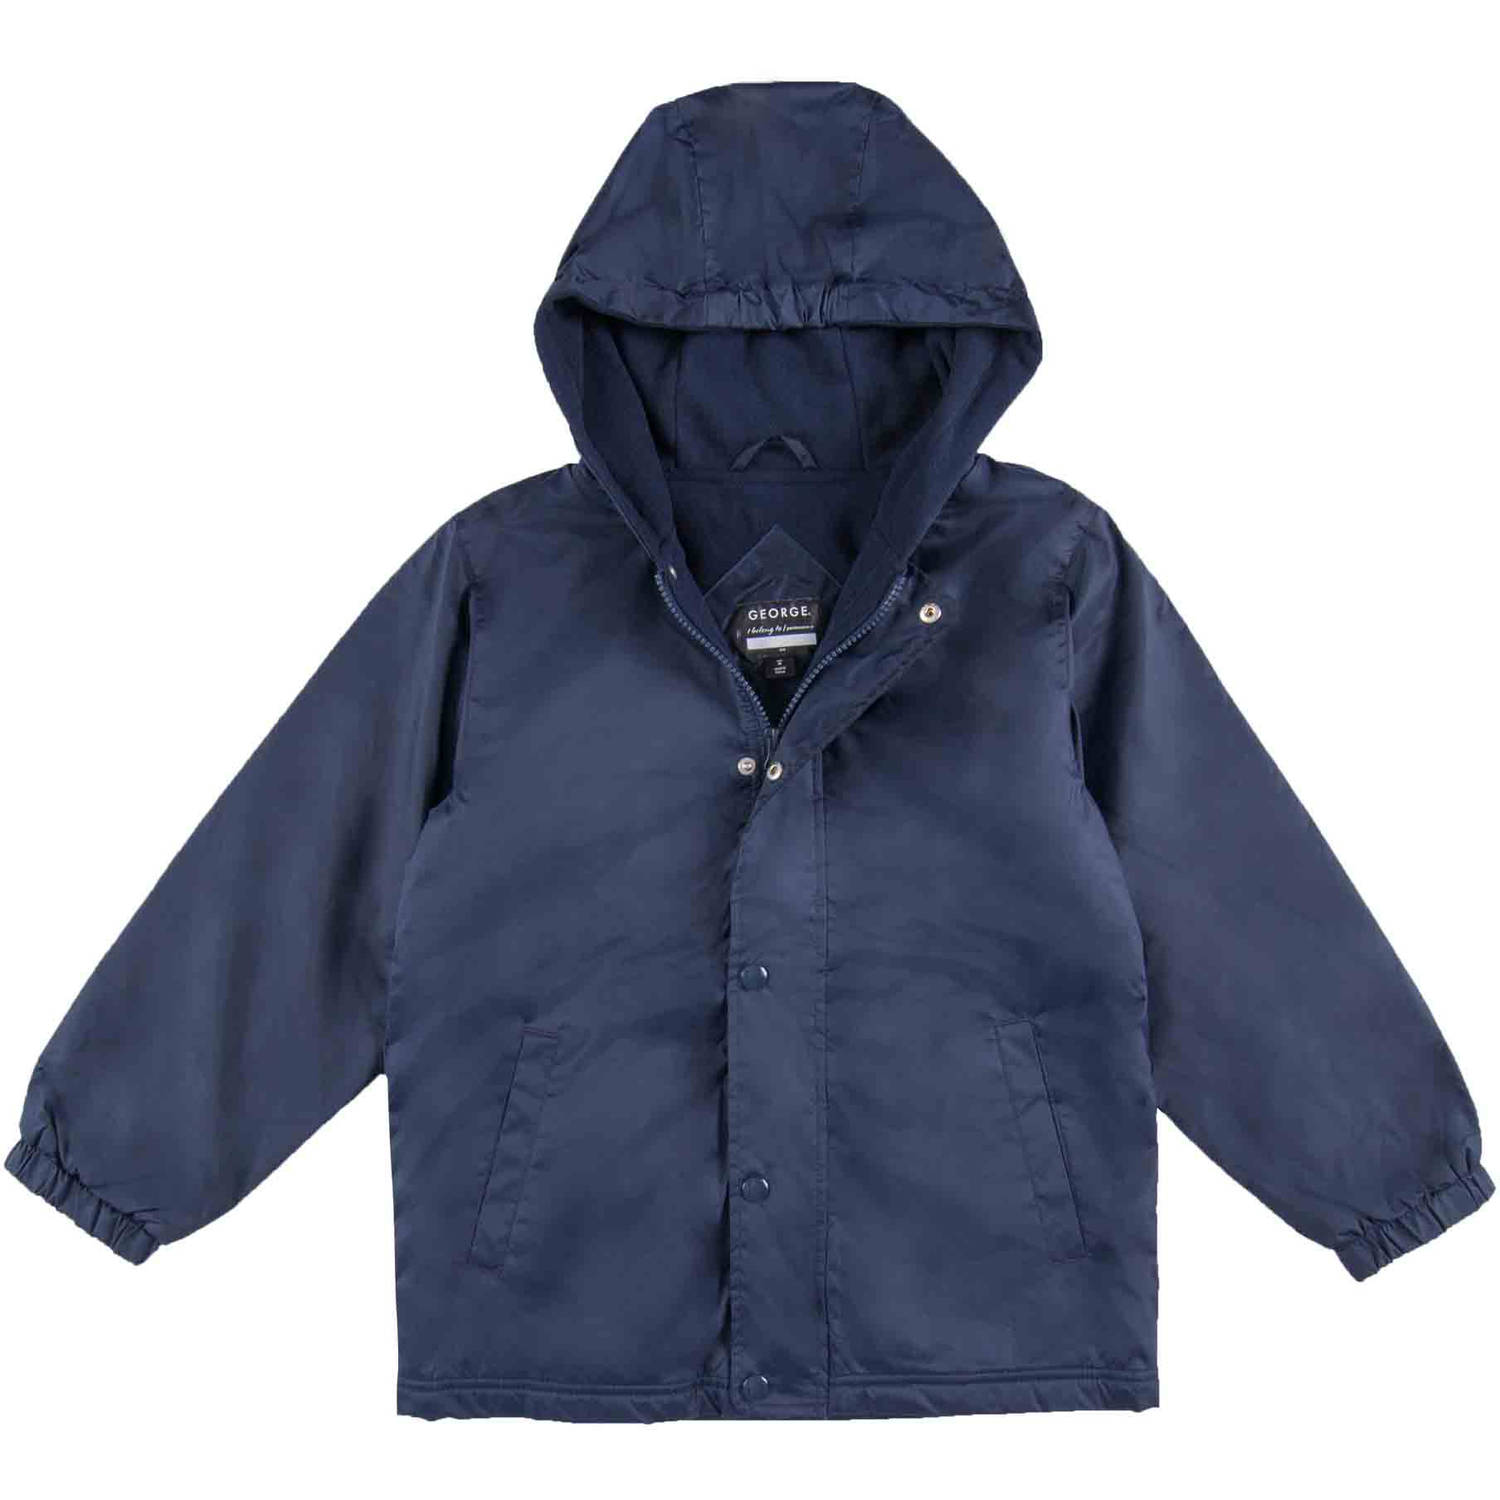 George School Uniform Boys Hooded Fleece Lined Jacket